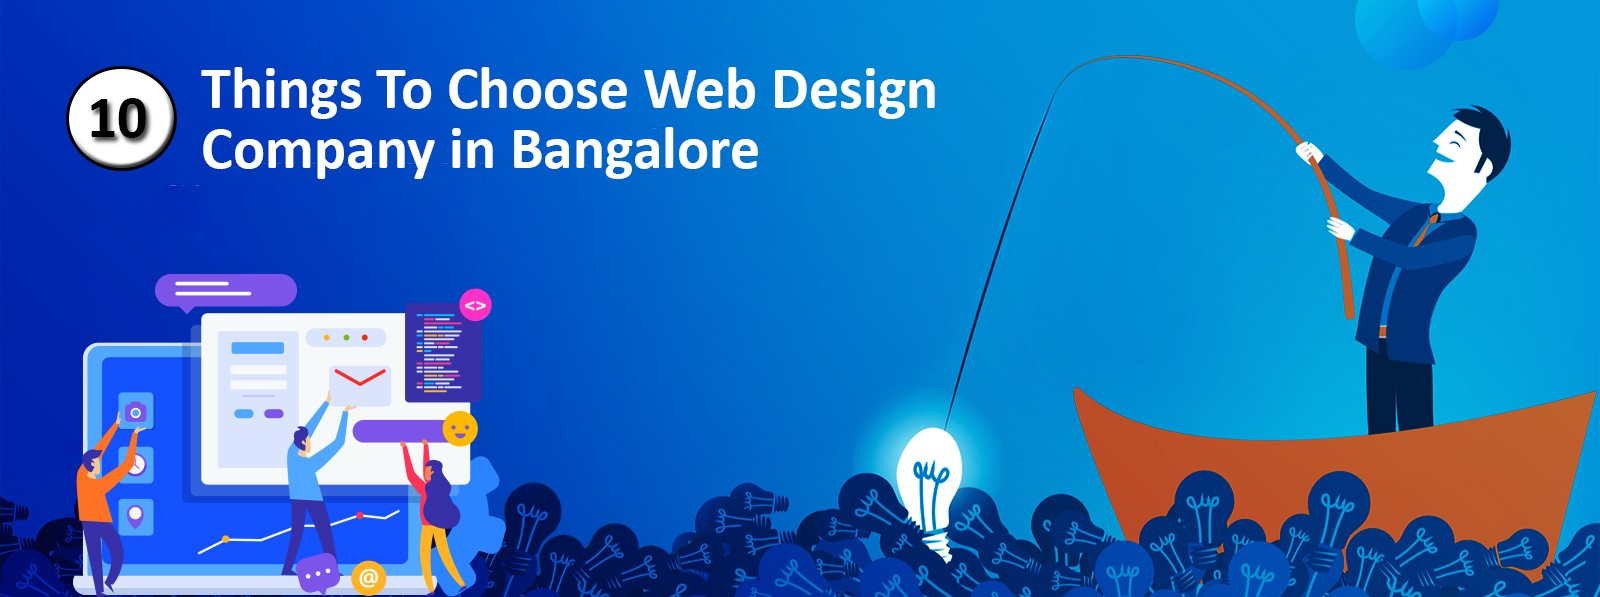 Choose web design company in Bangalore